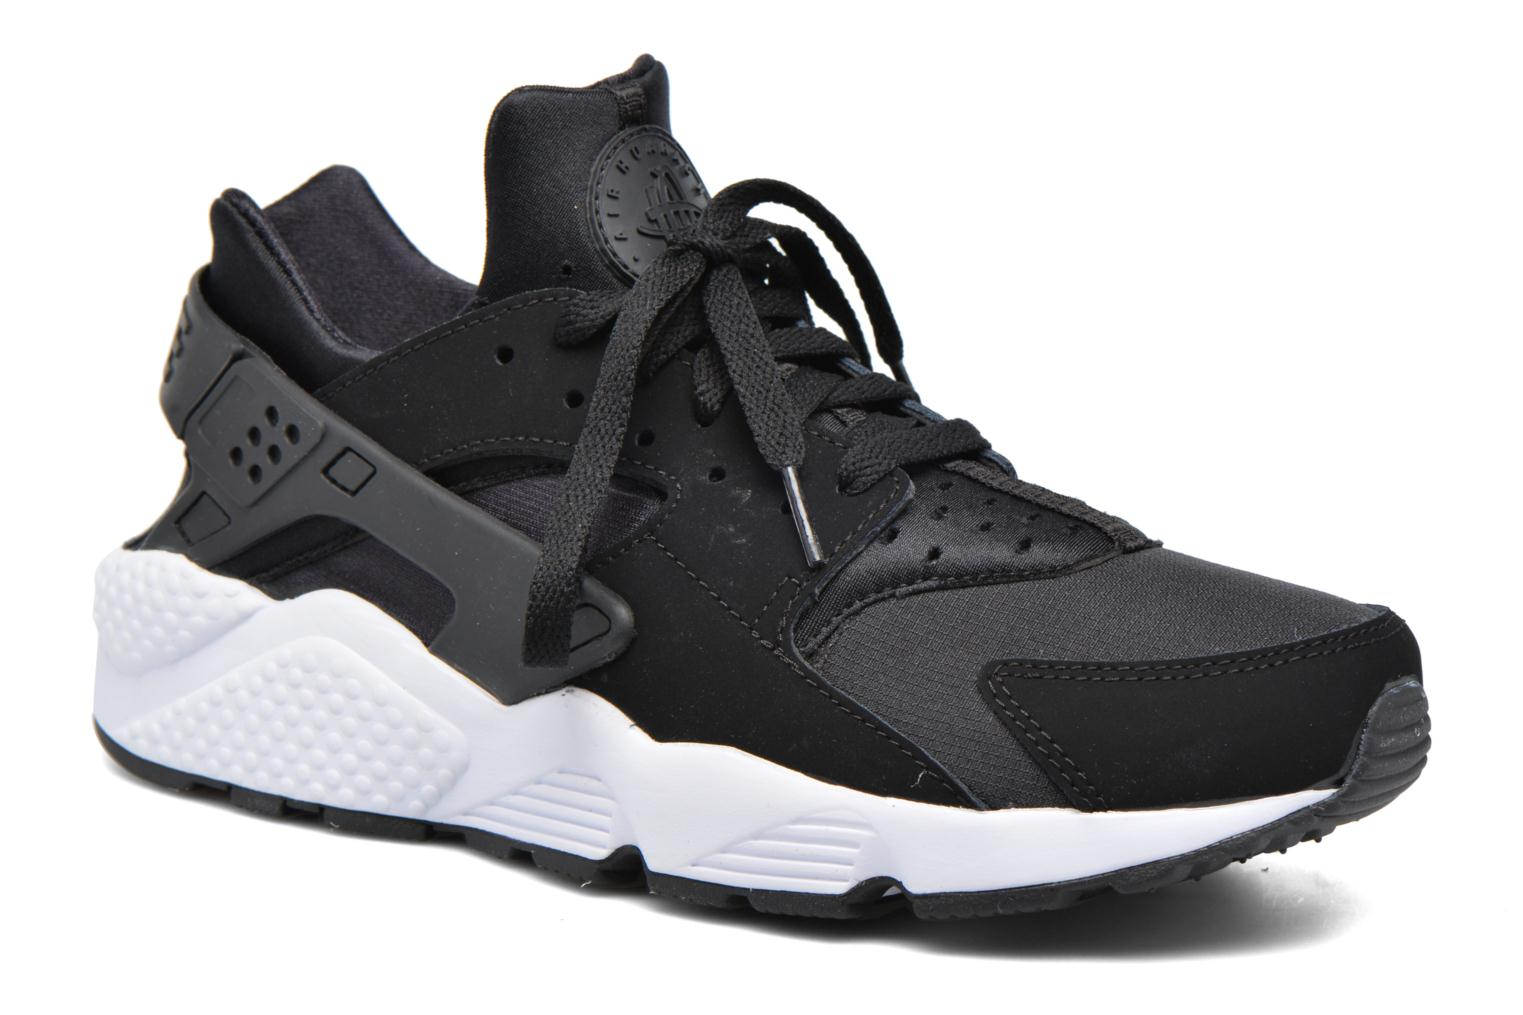 Nike Air Huarache Black/Black-Black-White